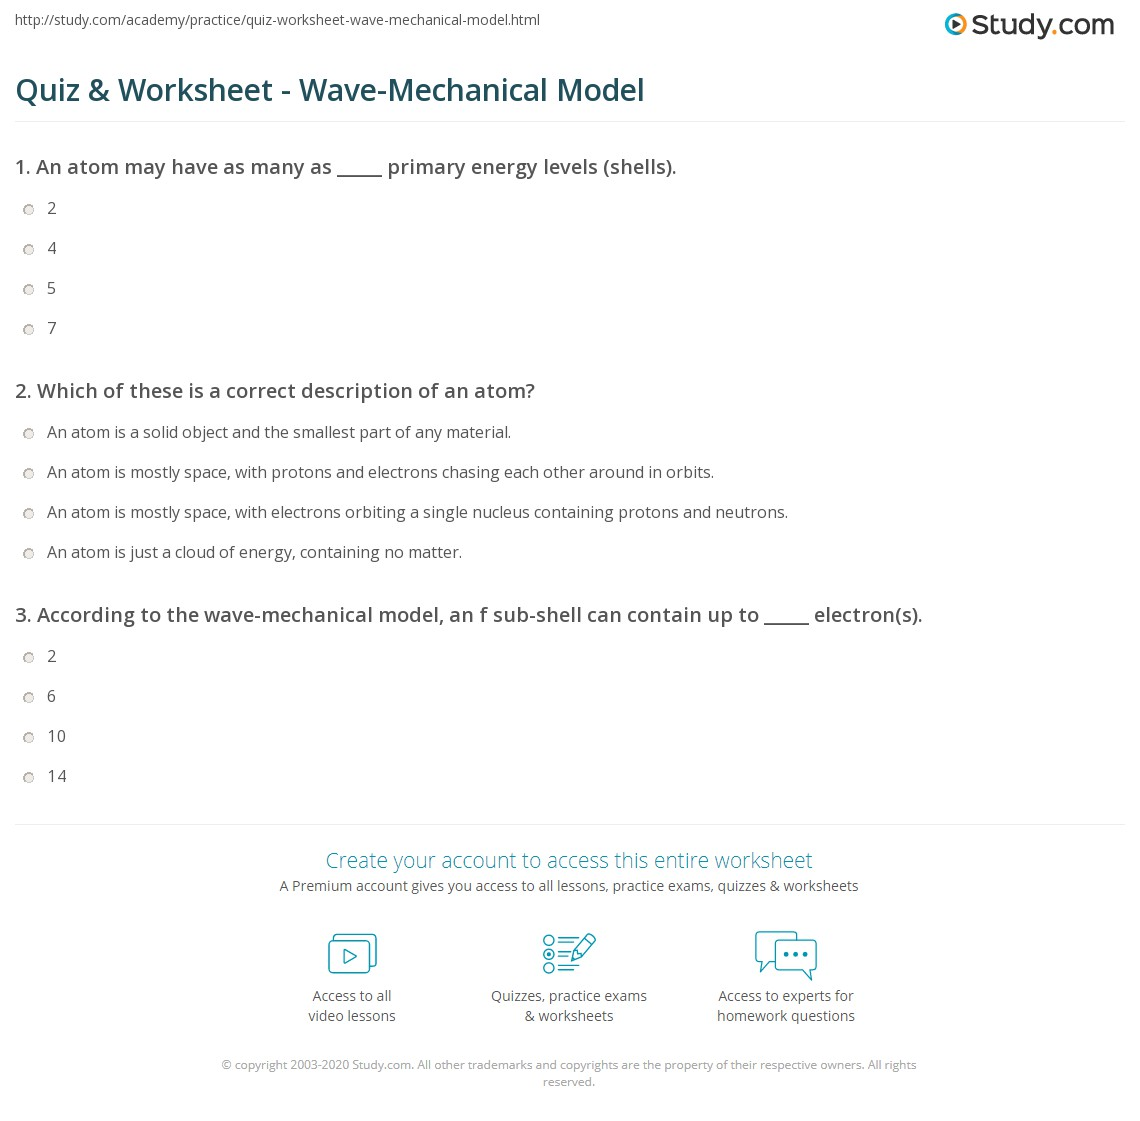 Quiz & Worksheet - Wave-Mechanical Model | Study.com